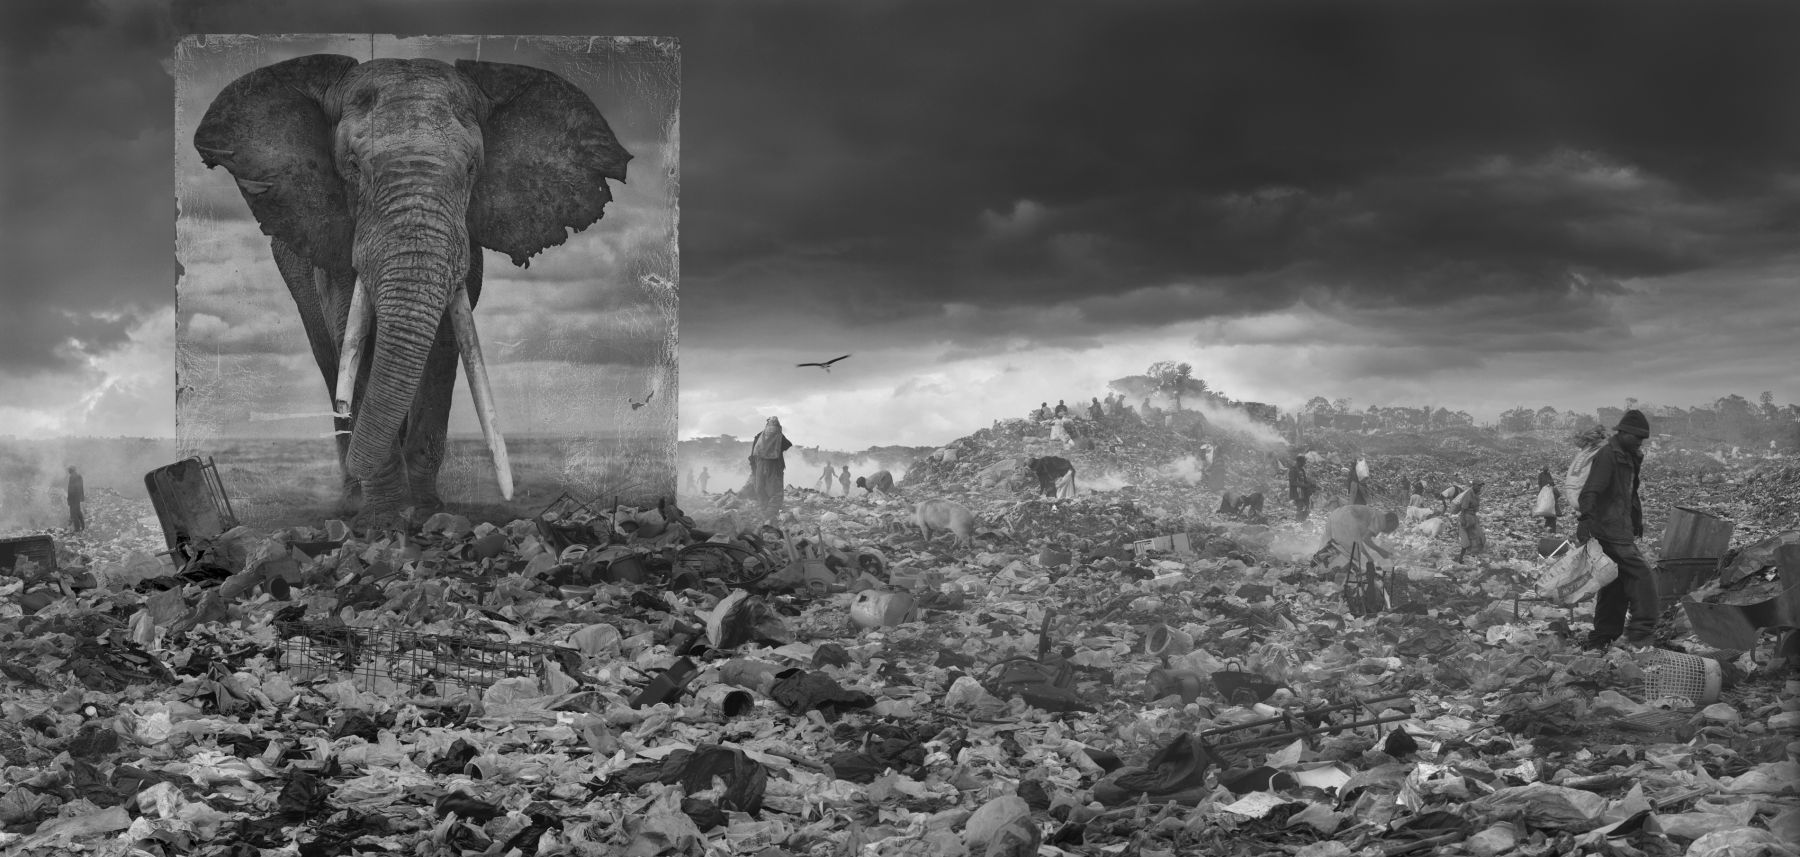 Nick Brandt Wasteland with Elephant, 2015